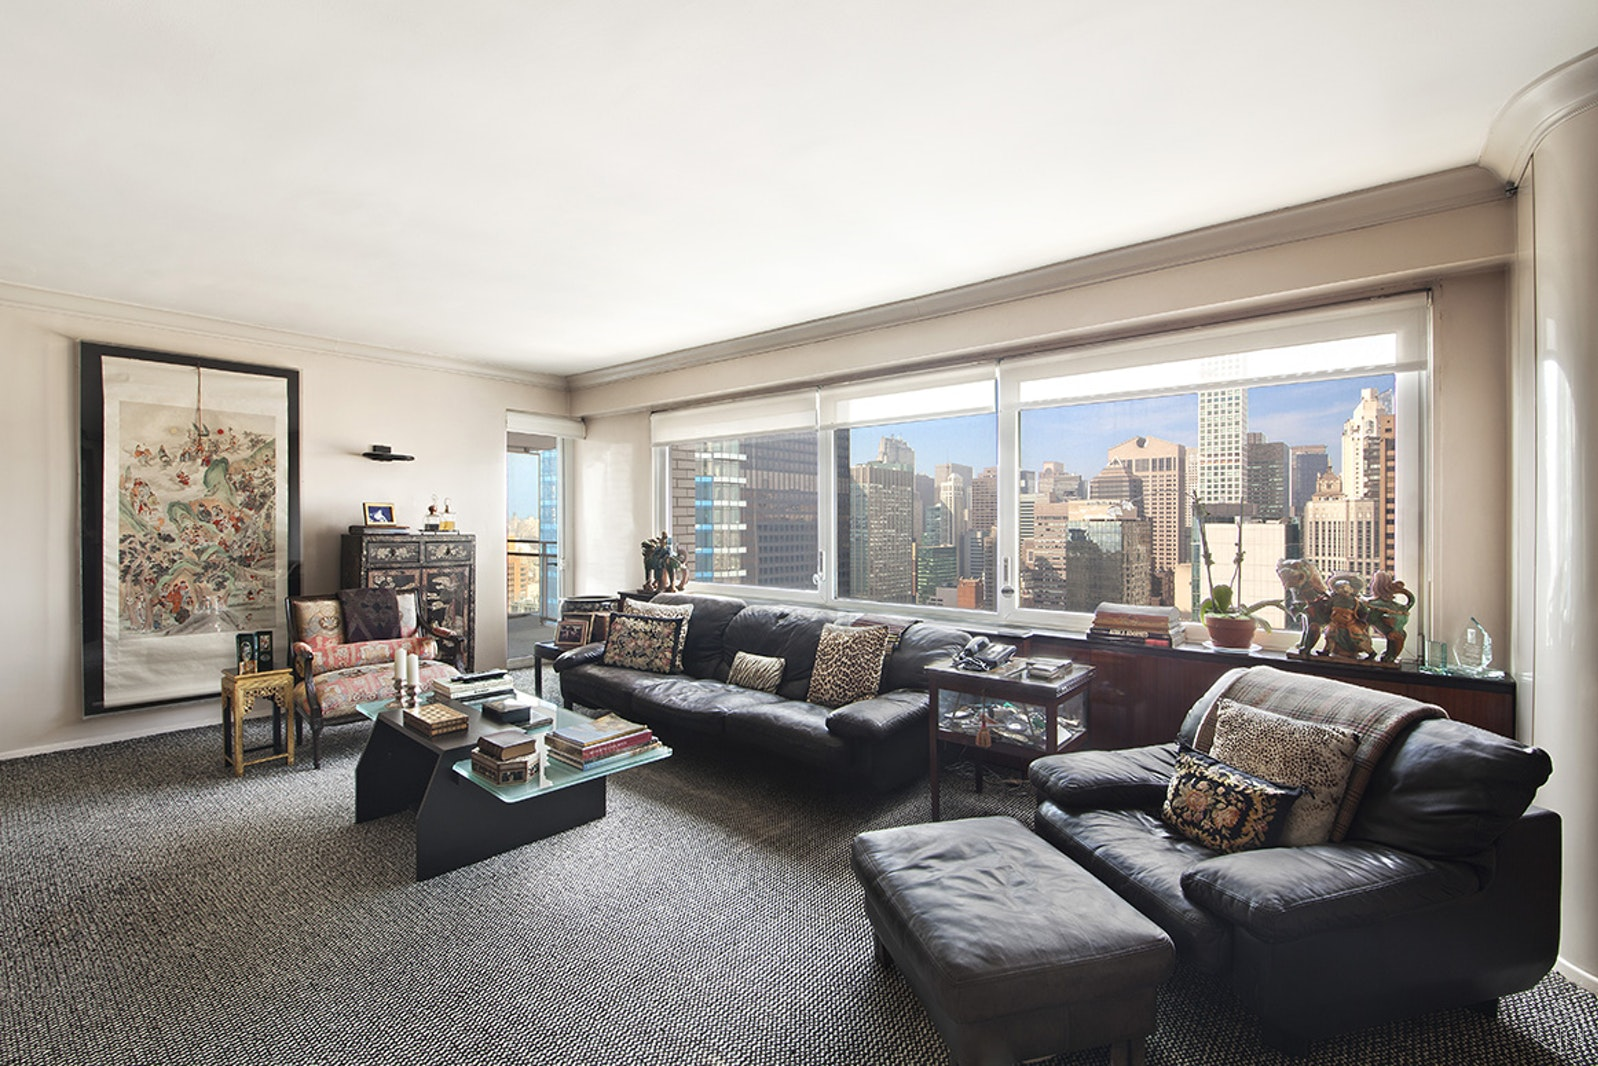 303 East 57th Street 39de, Midtown East, NYC, 10022, $1,750,000, Property For Sale, Halstead Real Estate, Photo 2